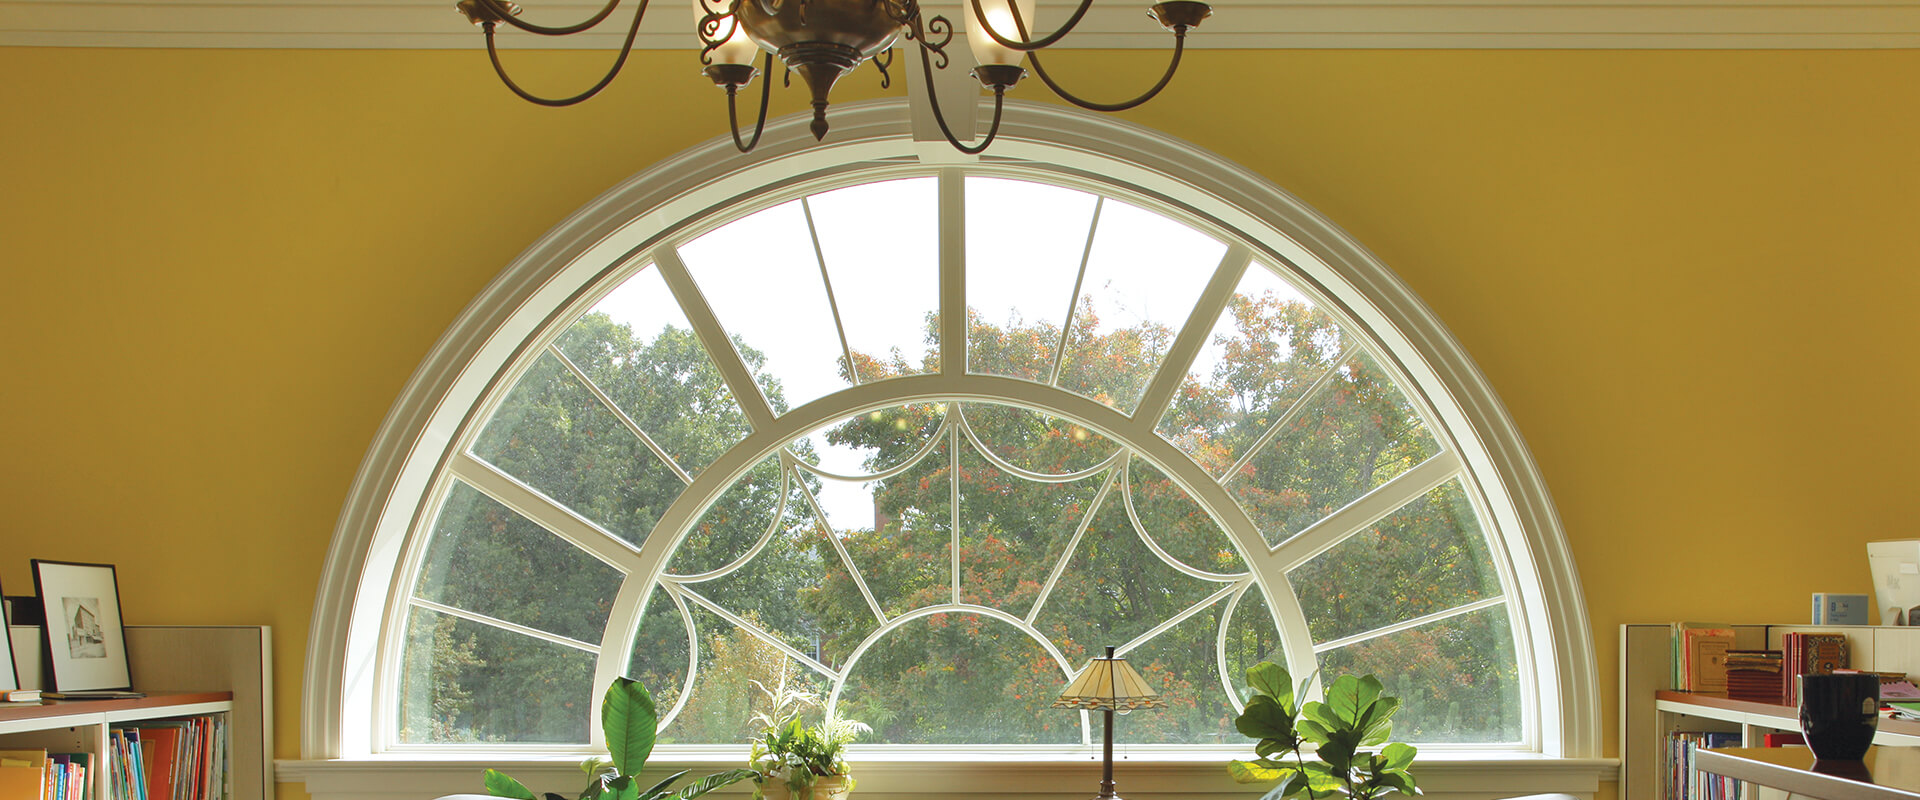 10 Stunning Arched Window Home Design Ideas Kolbe Windows Doors